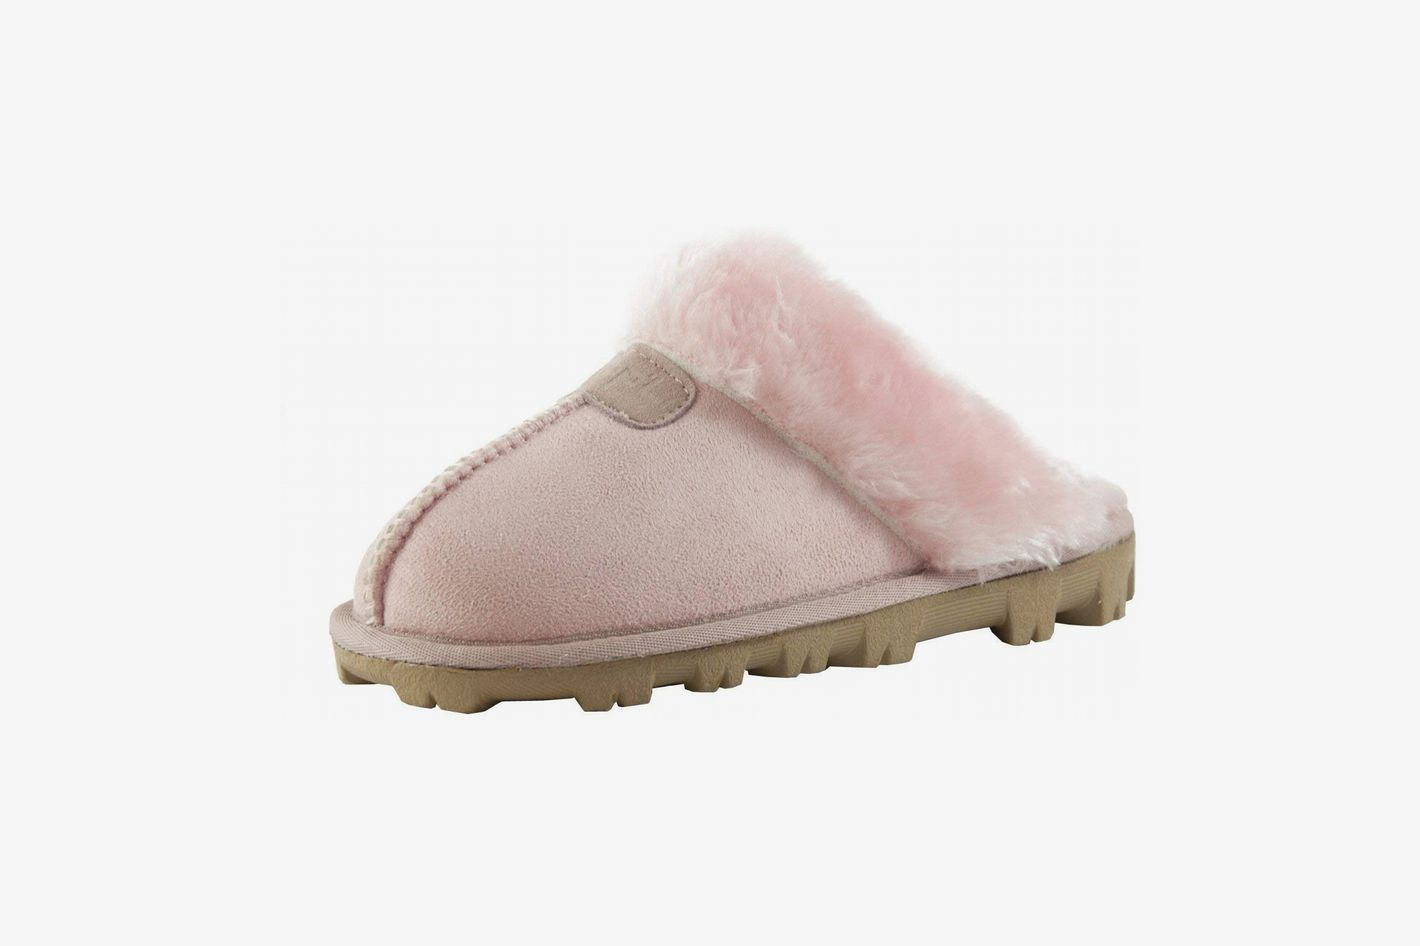 ea80171547bf2c Clppli Women's Slippers With a Faux Fur Trim